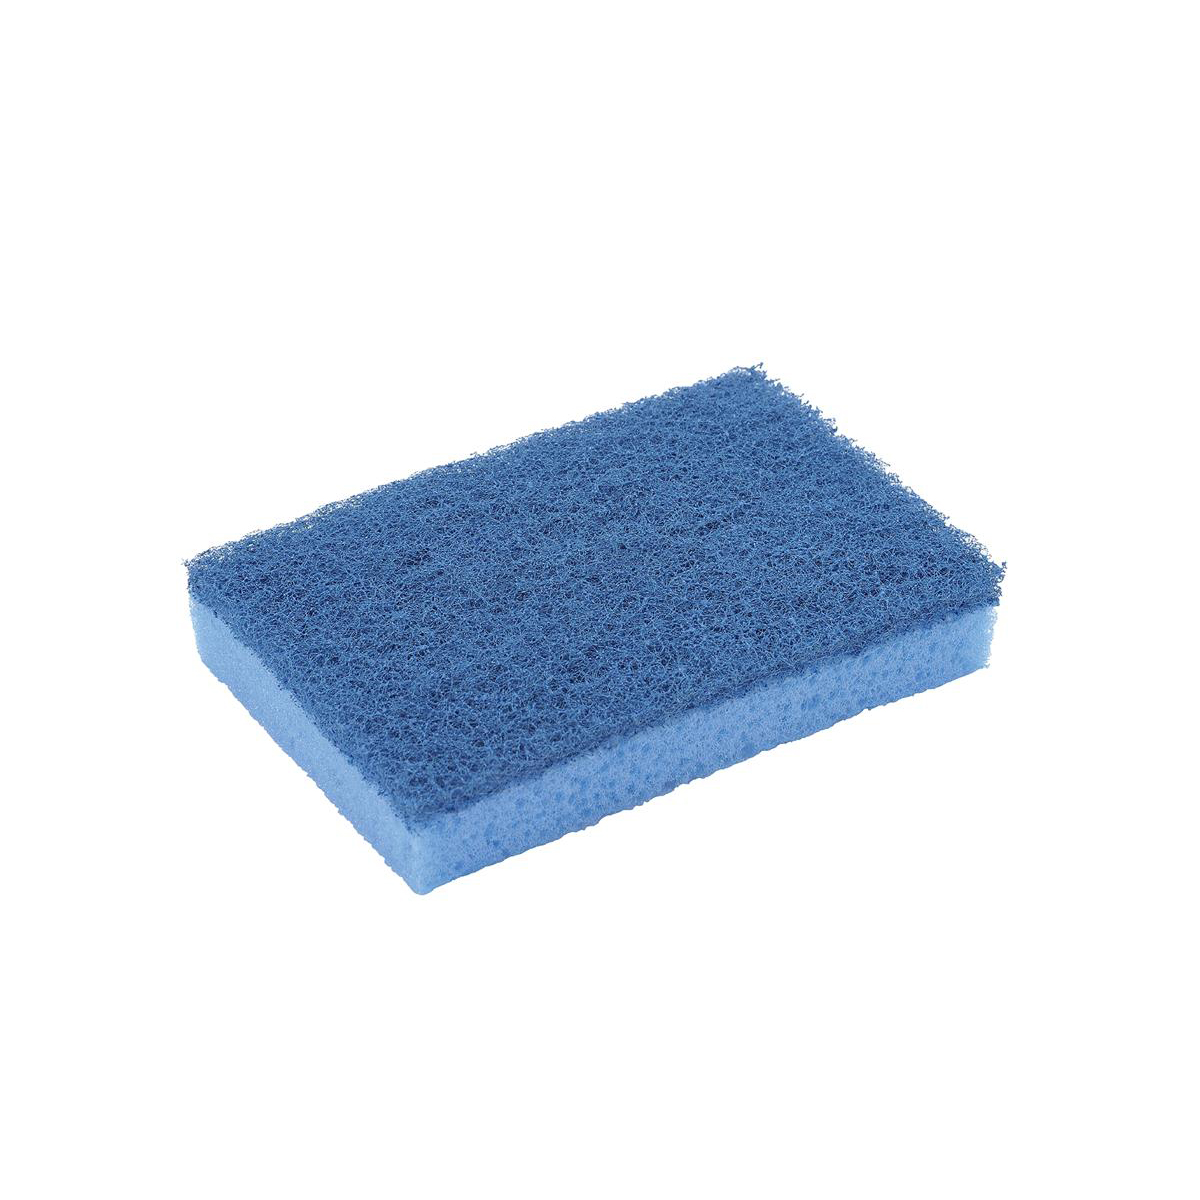 Sponges Sponge Scourer High Quality Non Scratch Blue Pack 10